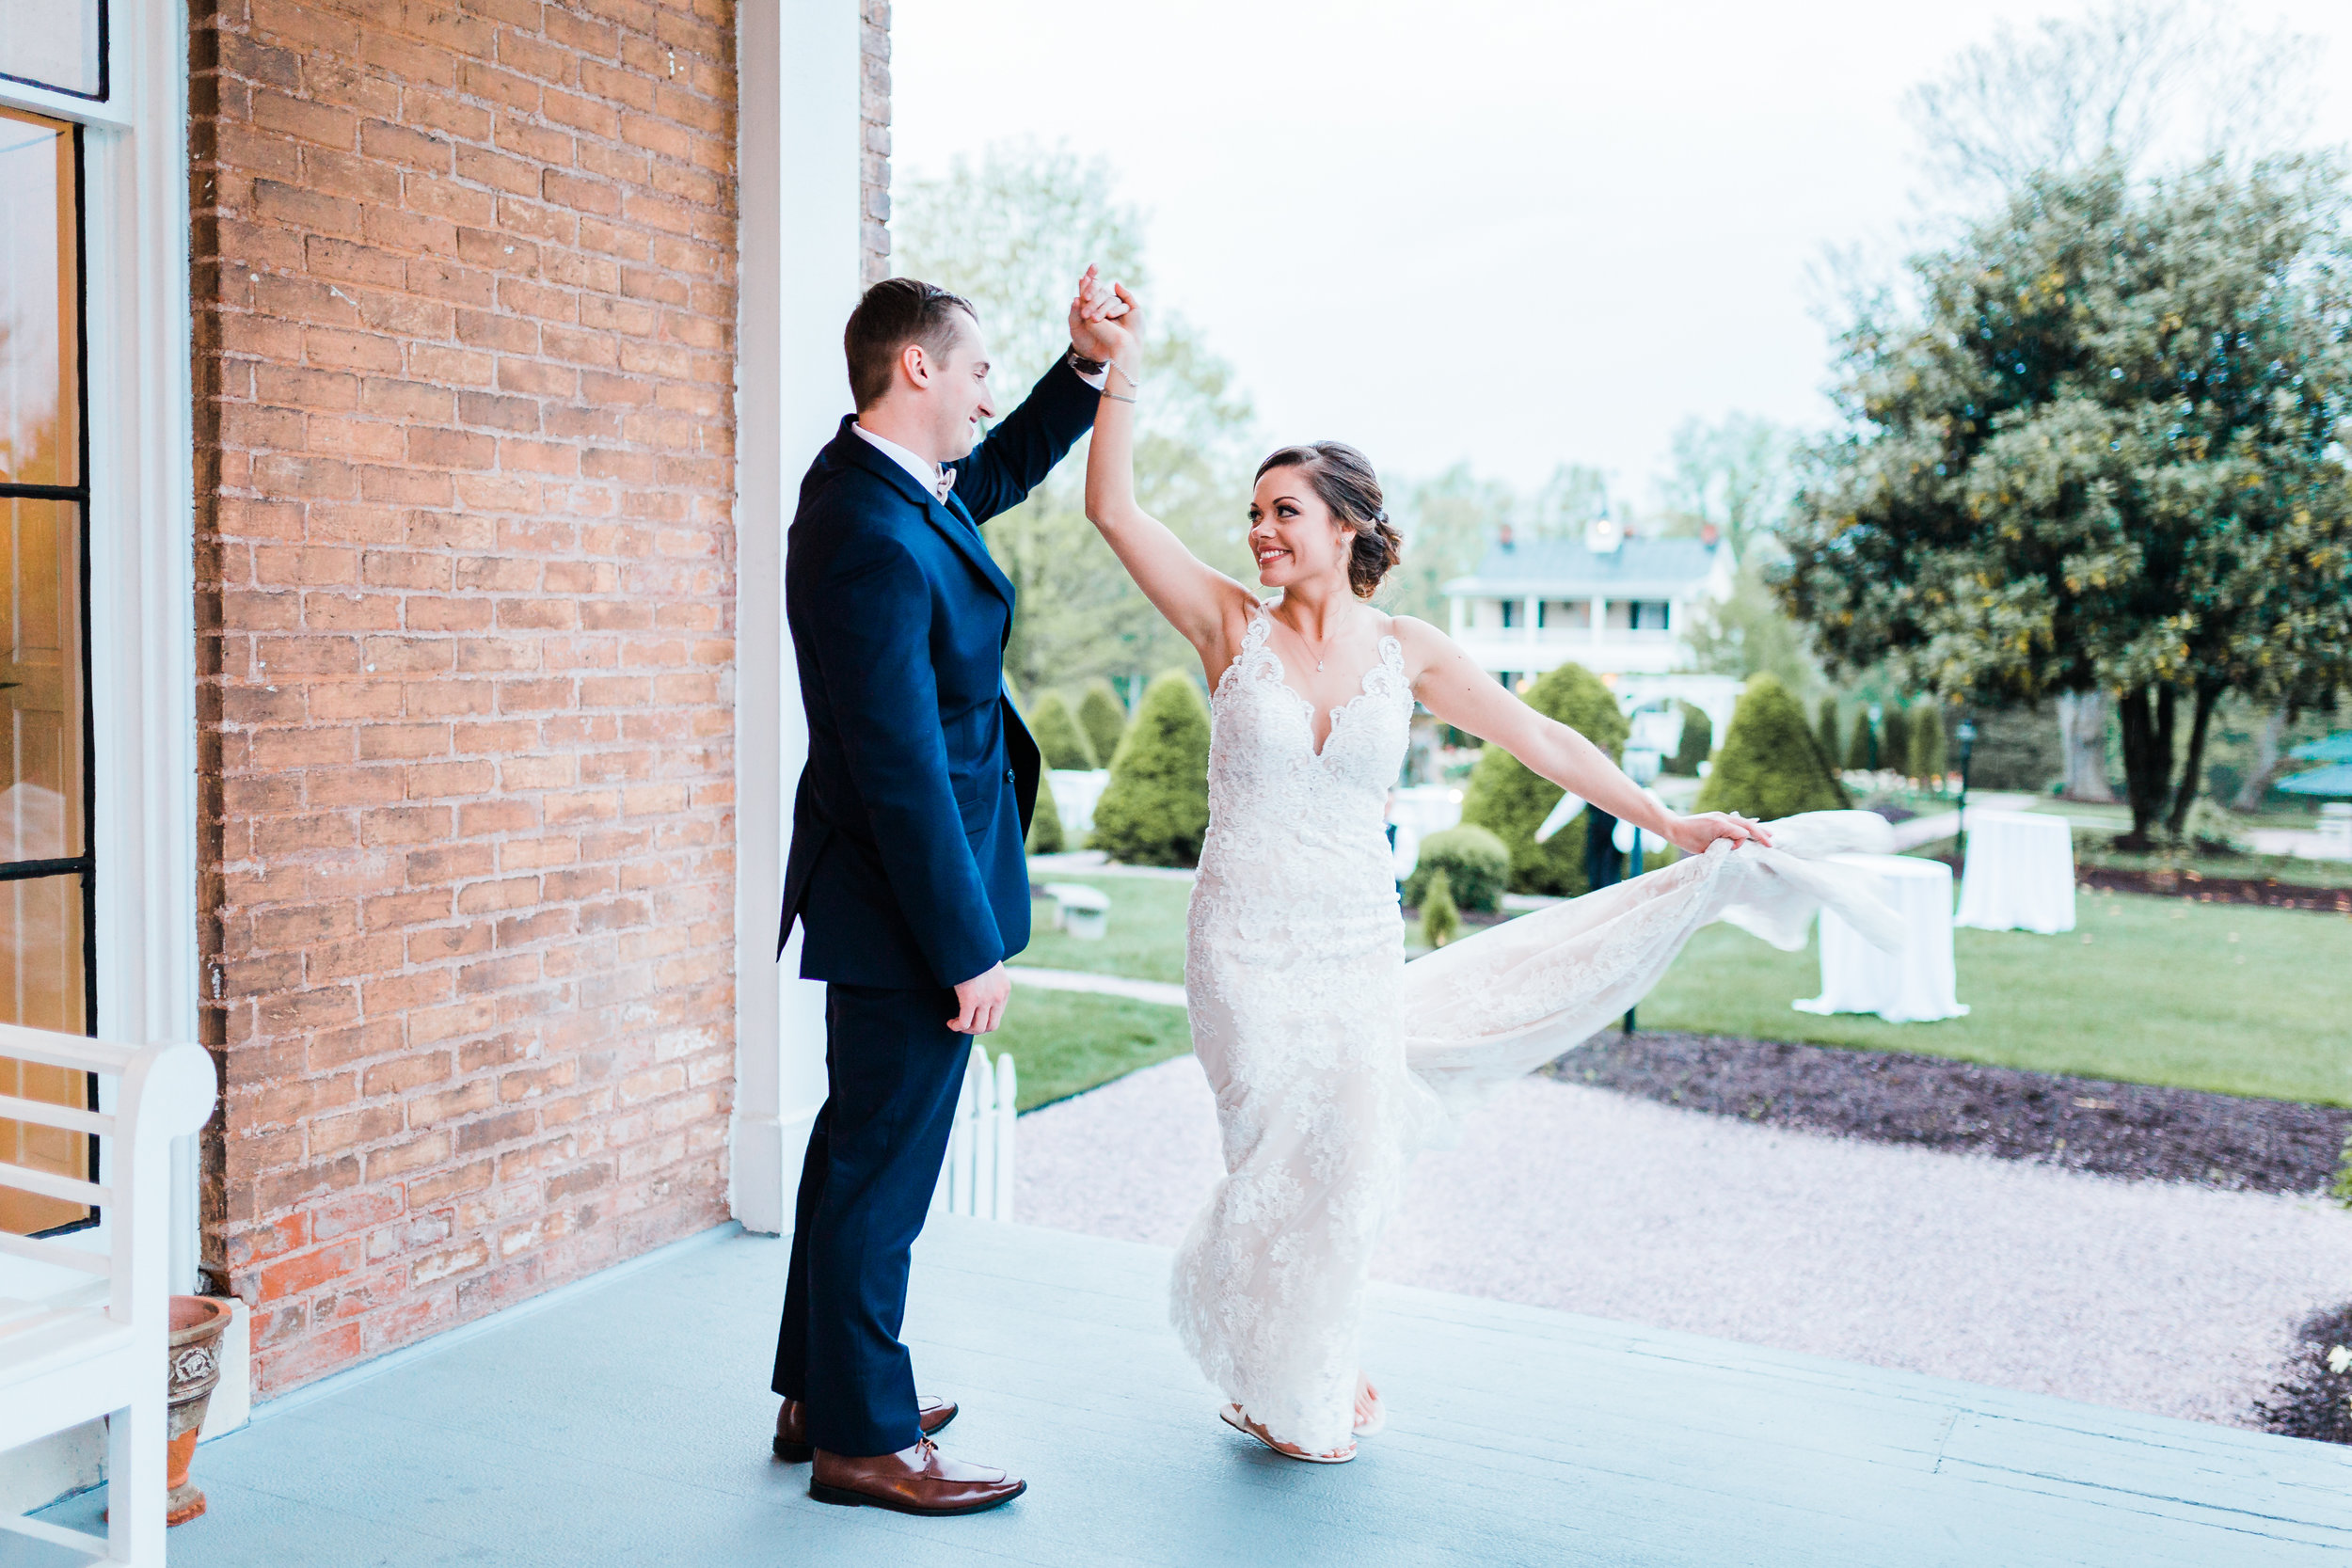 bride and groom dancing on the deck at antrim 1844 in taneytown md - photographer